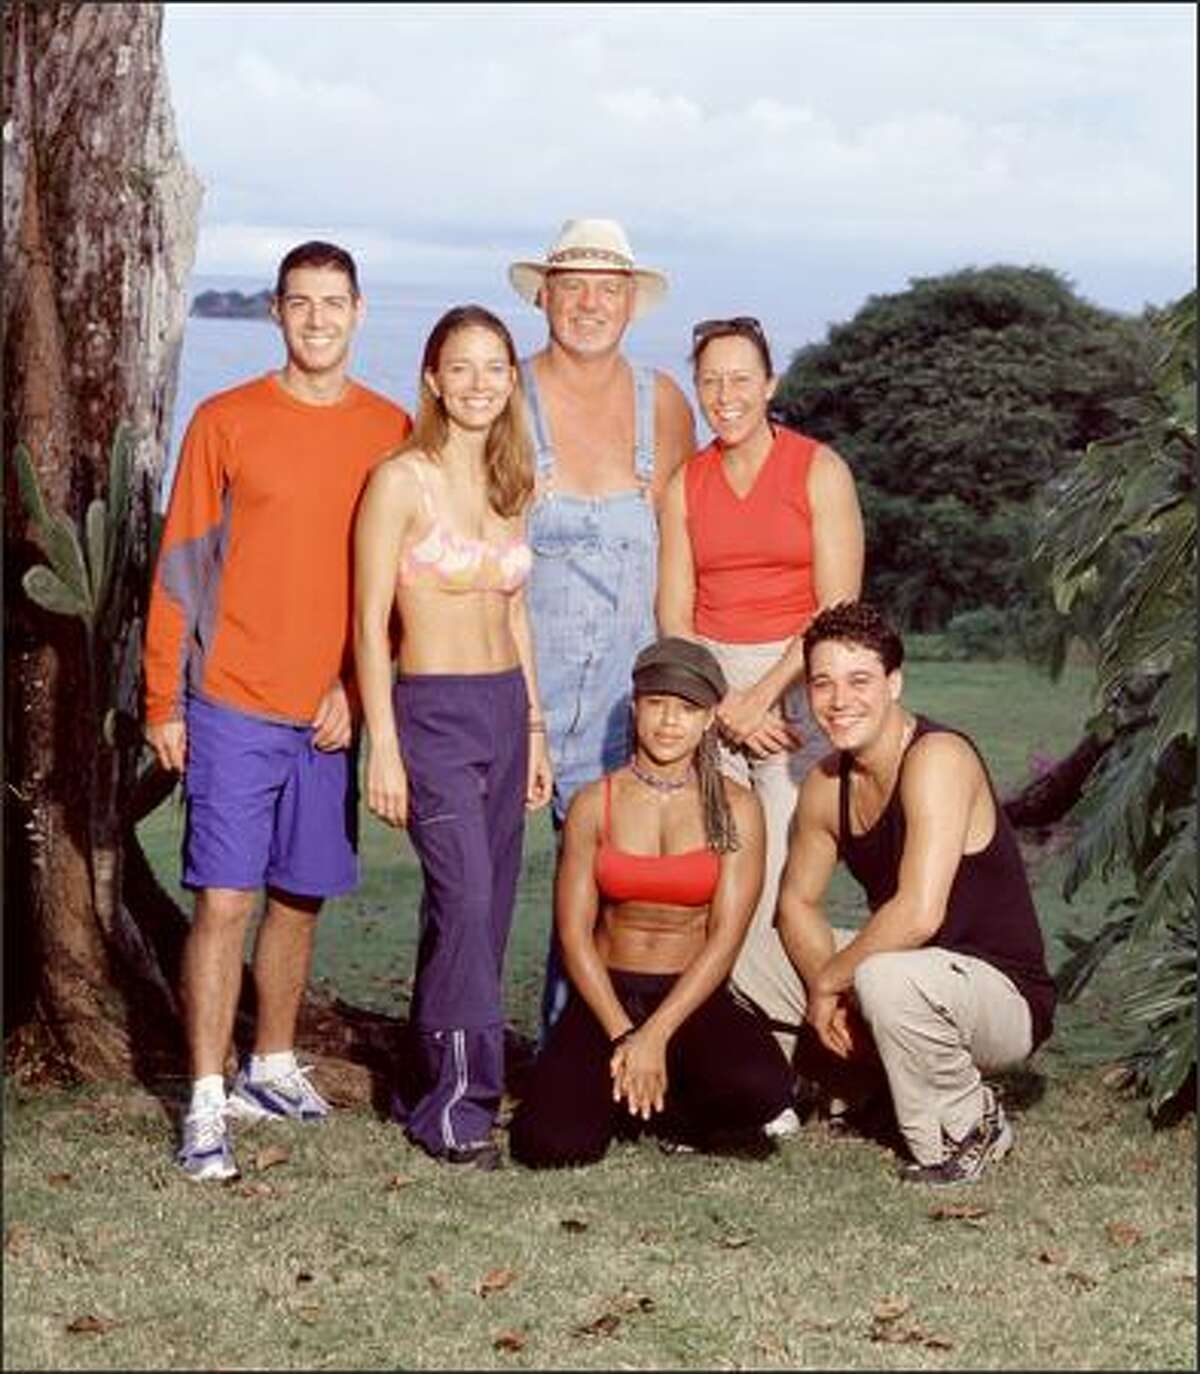 Members of the Chapera tribe, from left, Rob Cesternino, Amber Brkich, Tom Buchanan, Alicia Calaway, Sue Hawk and Rob Mariano, participating in SURVIVOR: ALL STARS, set to premiere on CBS after the Super Bowl on Feb. 1.